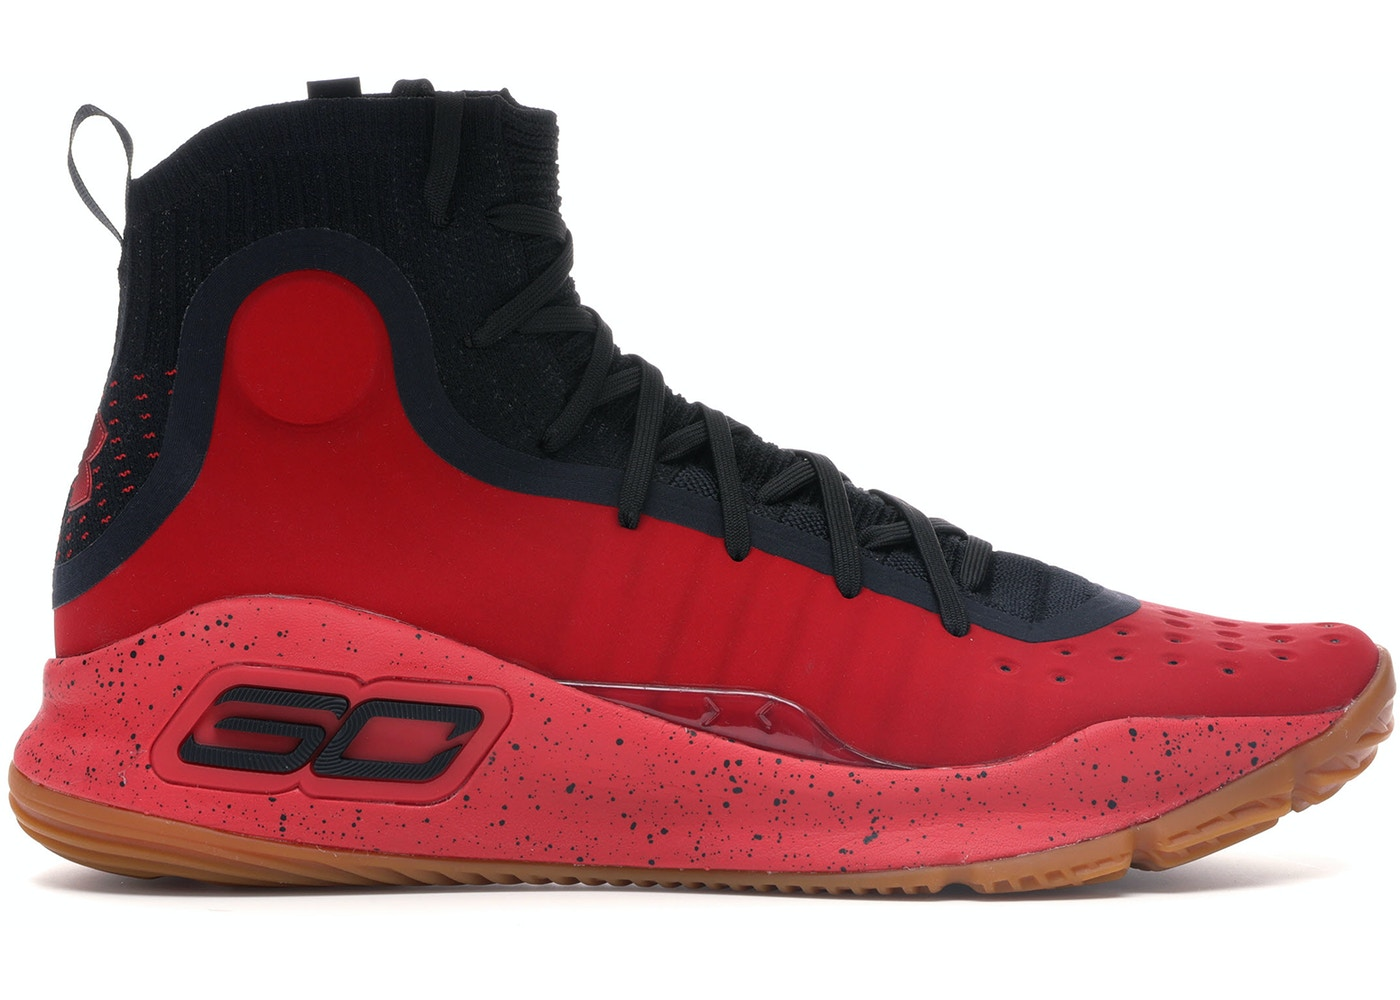 aa6e1f0c0330 Under Armour Curry 4 Red Black Gum - 1298306-603